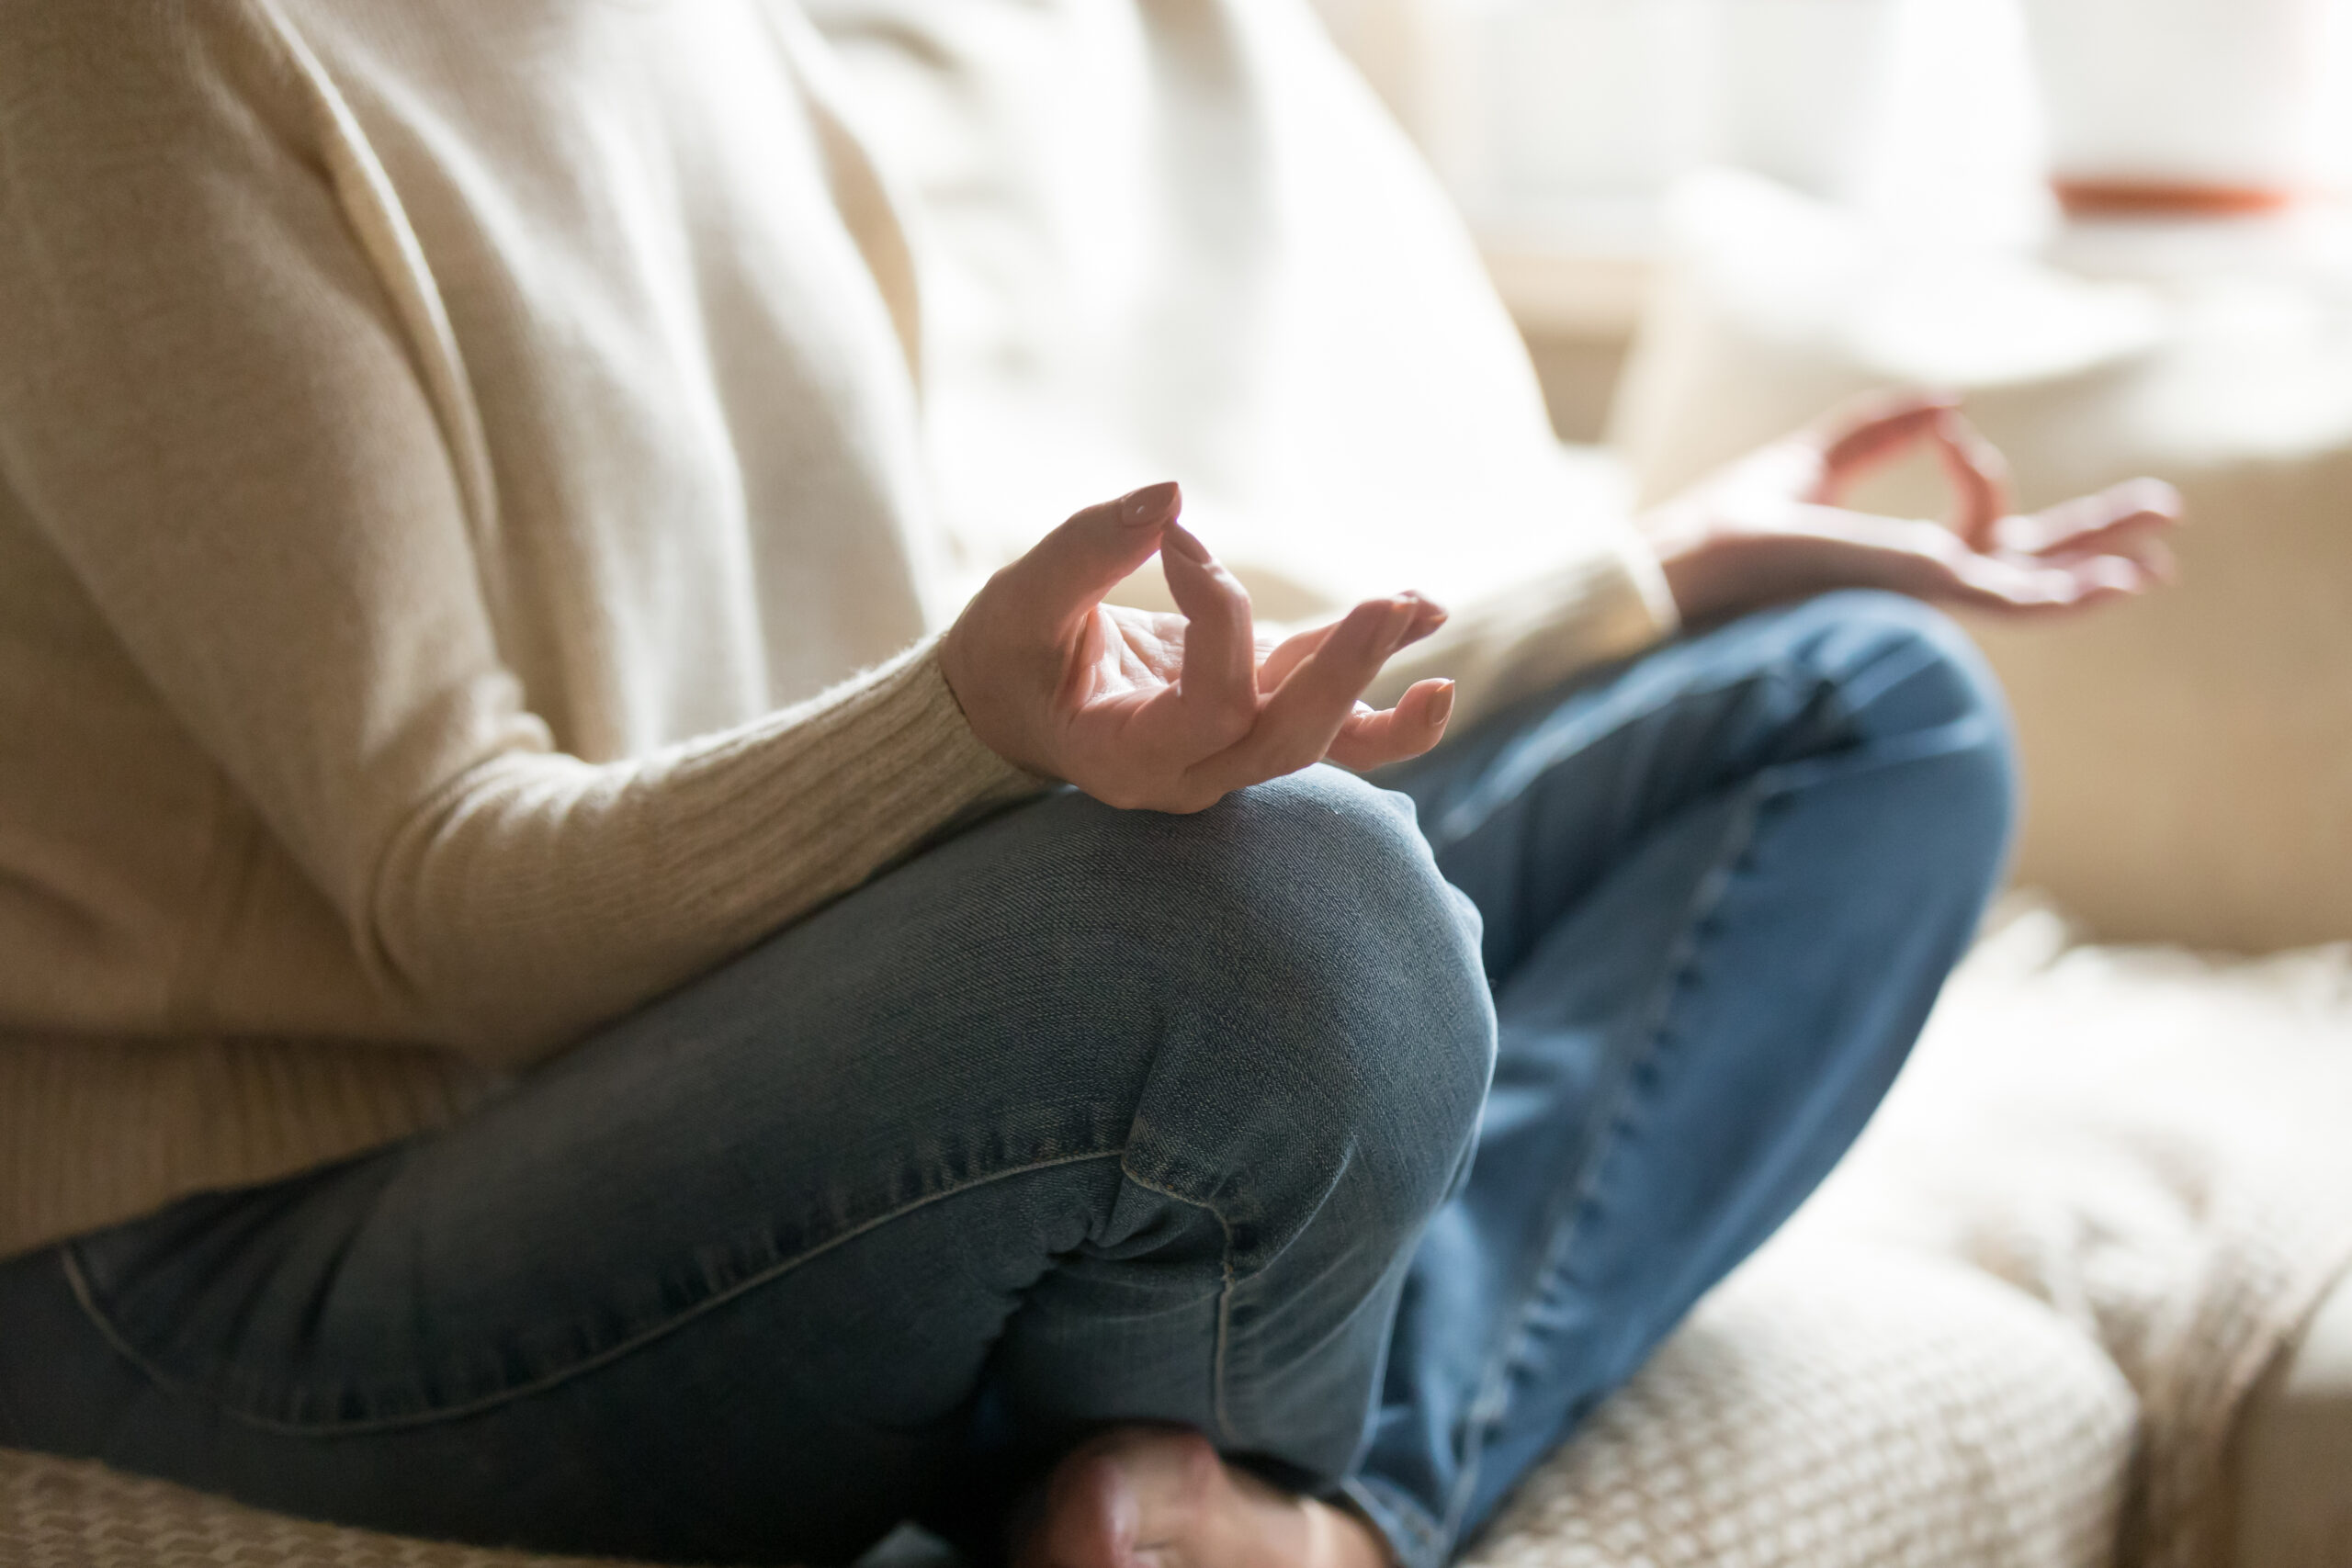 Calm senior woman sitting on sofa holding hands in mudra practicing home yoga in lotus pose for relaxation, old mature middle aged female enjoying meditating alone for peaceful mind, close up view